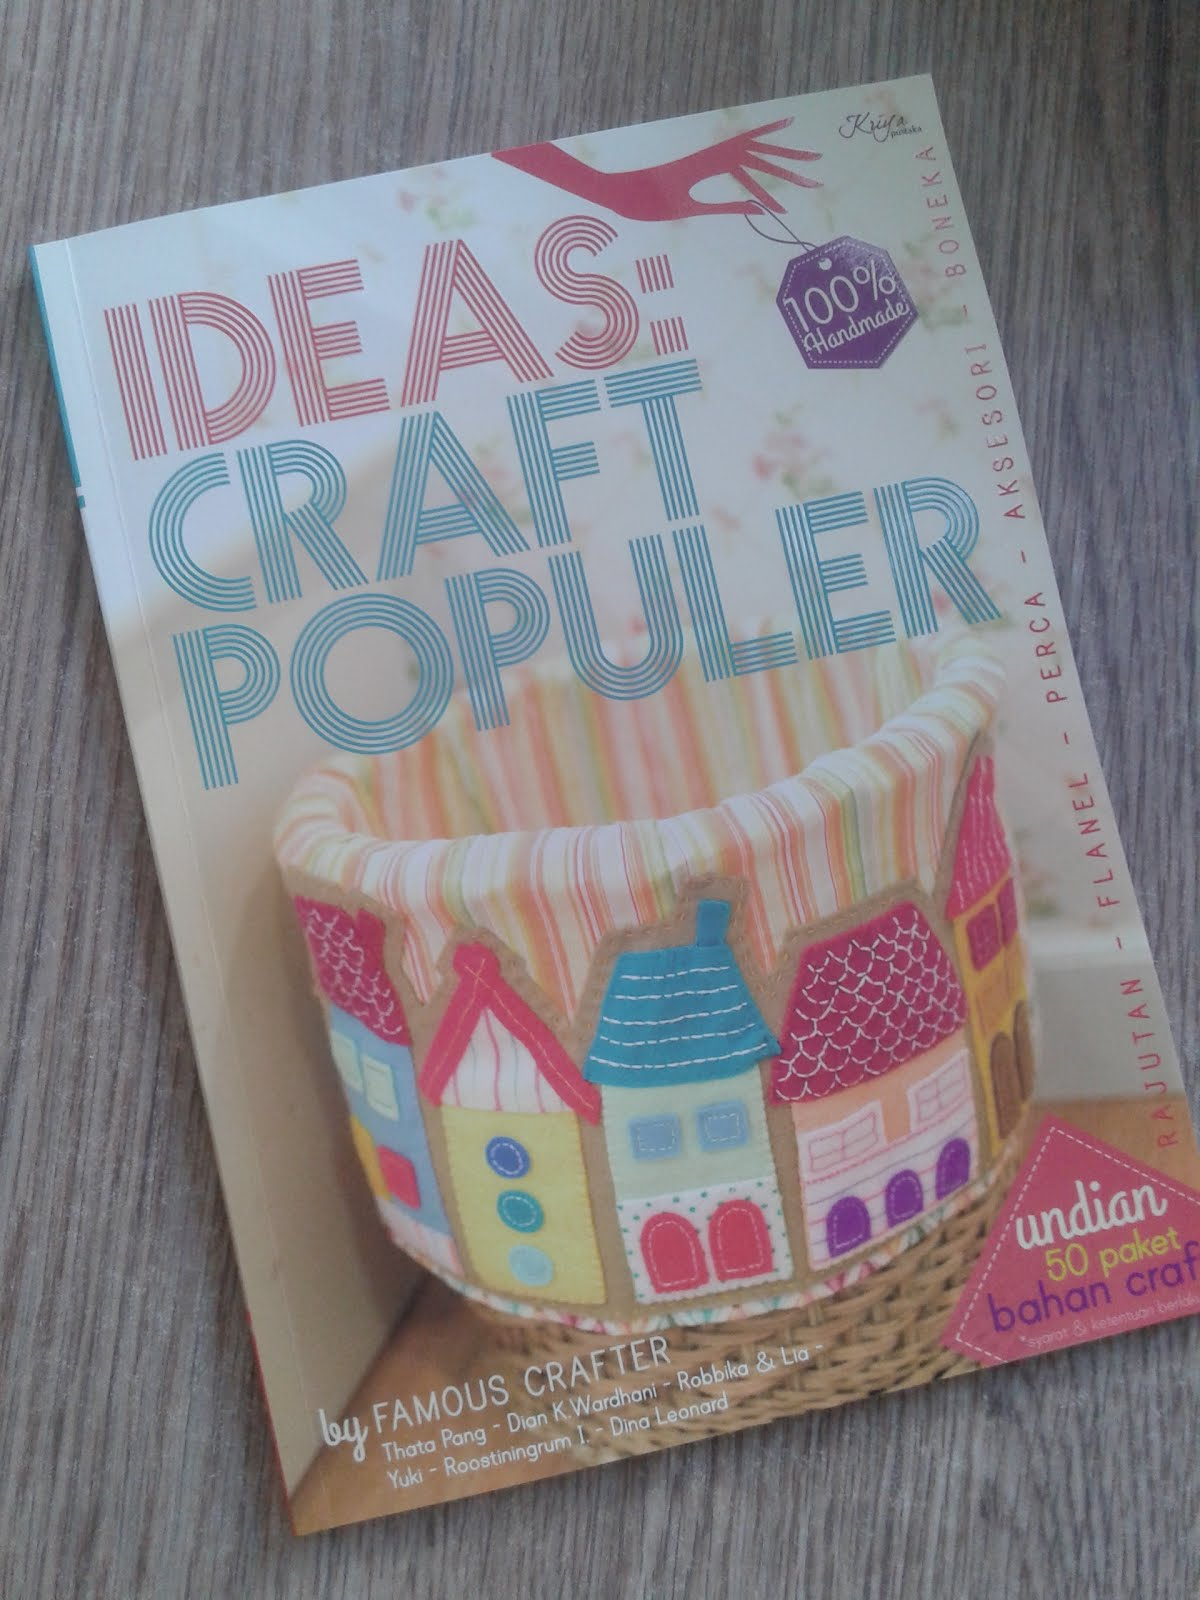 #3rd Craft Book